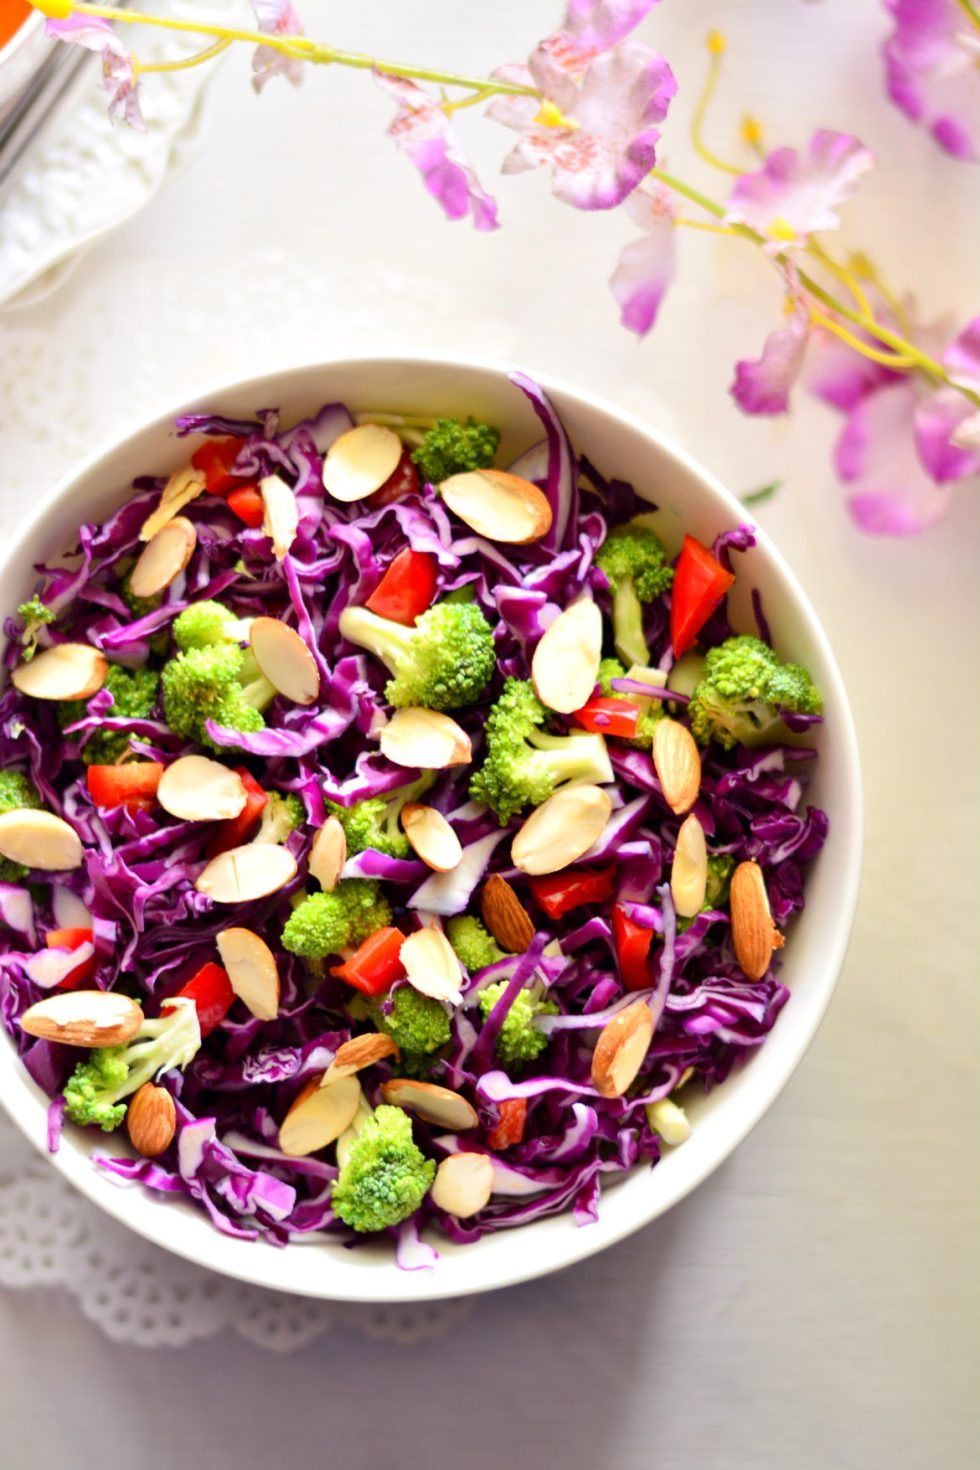 Purple Cabbage & Broccoli Salad with Miso Orange & Almond Dressing